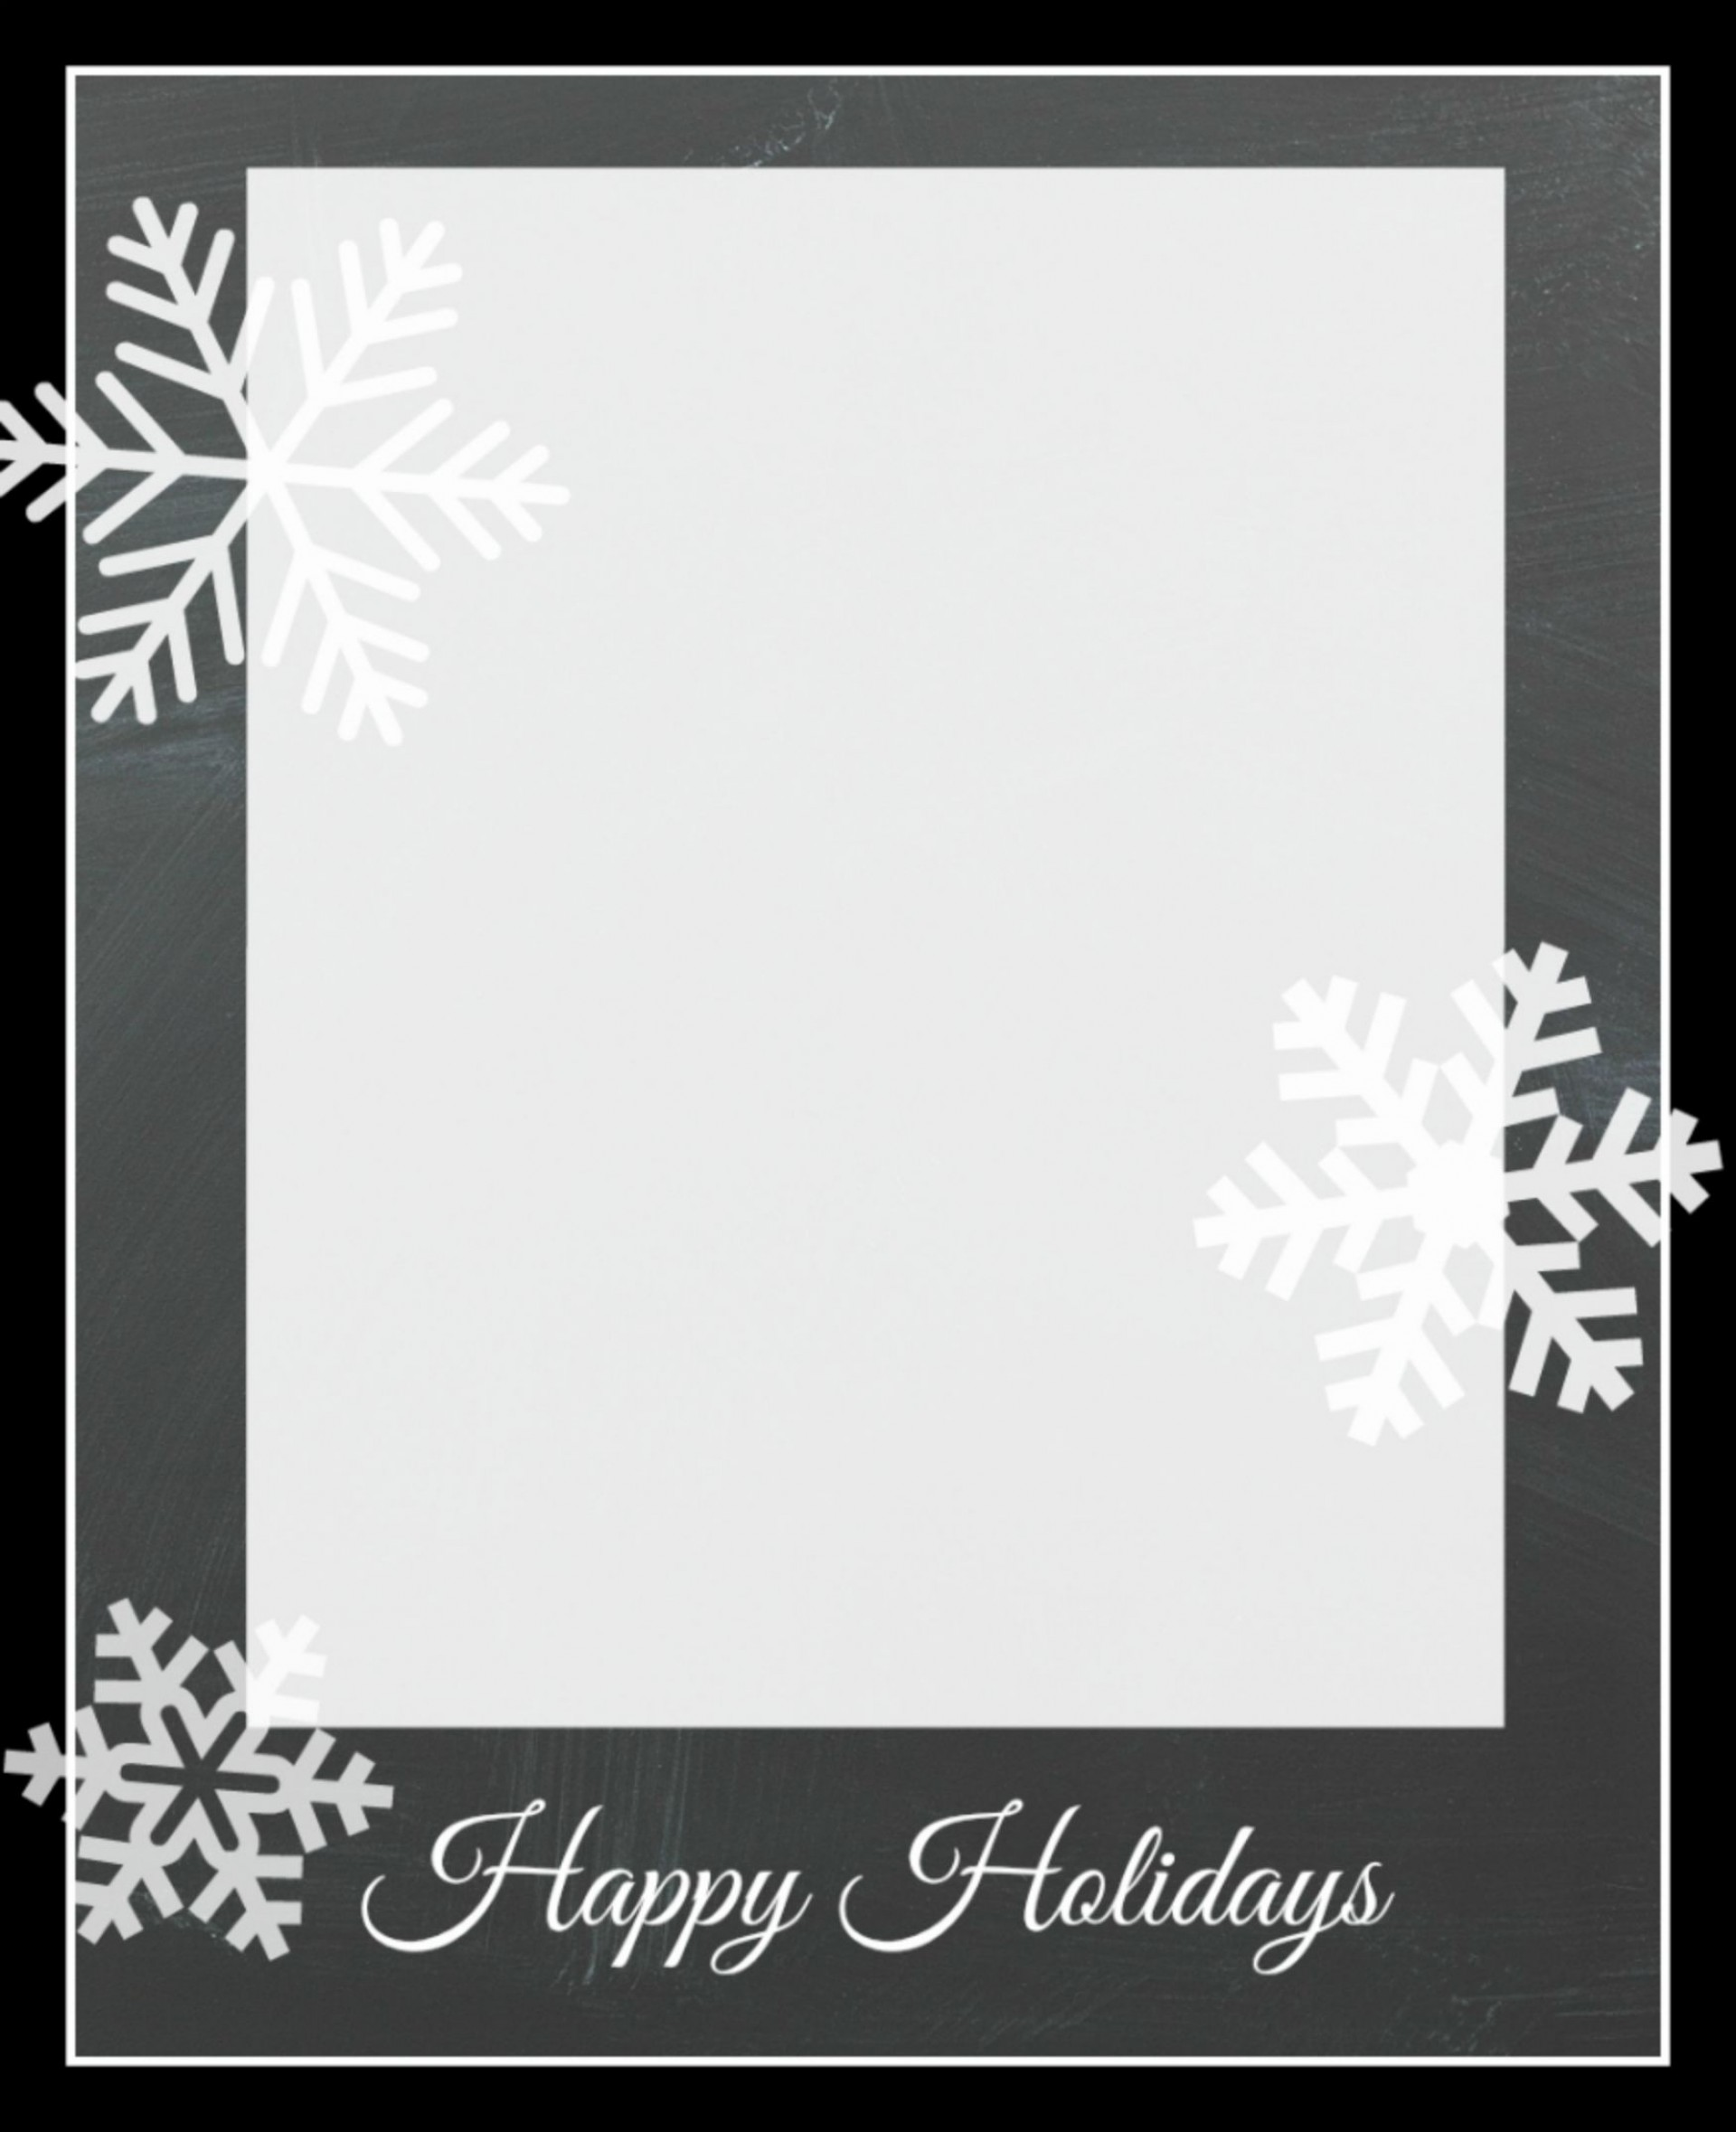 009 Beautiful Free Photo Christma Card Template Image  Templates For Photoshop Online1920